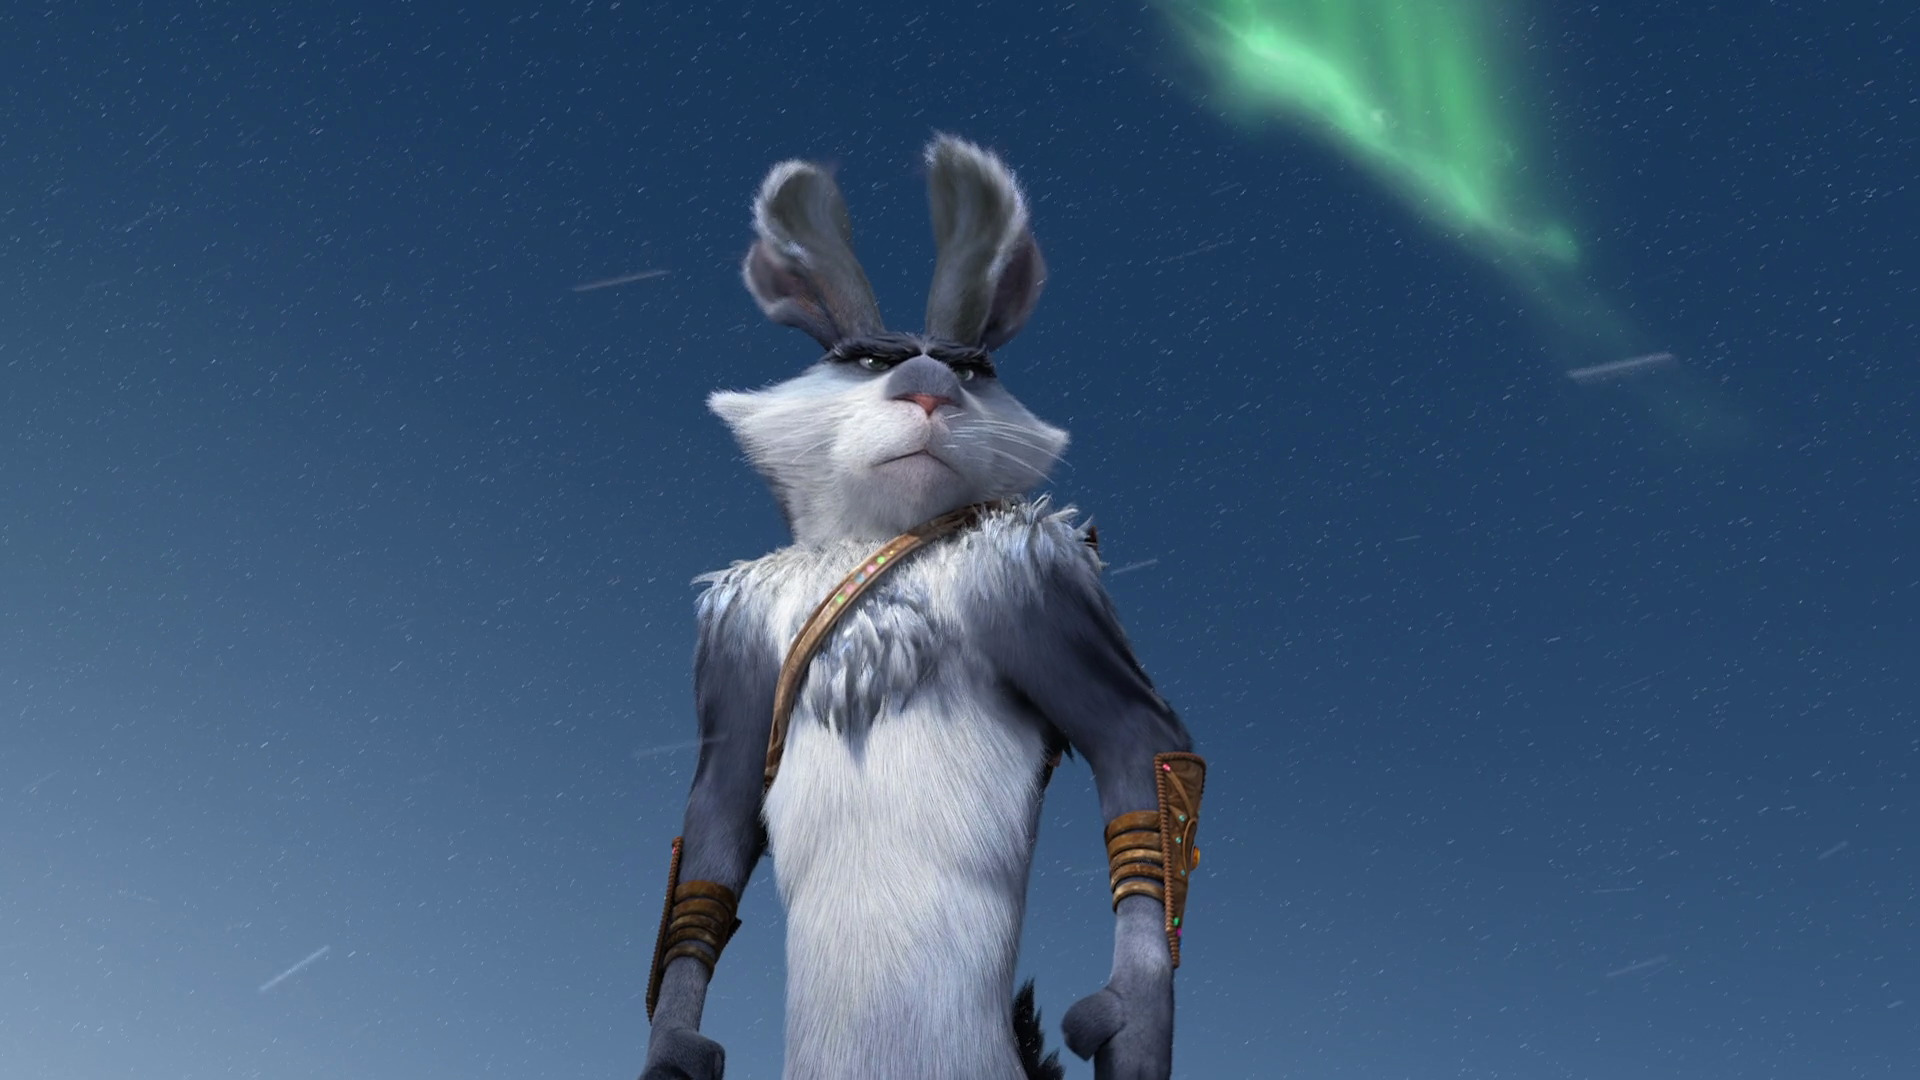 Rise of the guardians images bunnymund hq hd wallpaper and rise of the guardians images bunnymund hq hd wallpaper and background photos thecheapjerseys Gallery